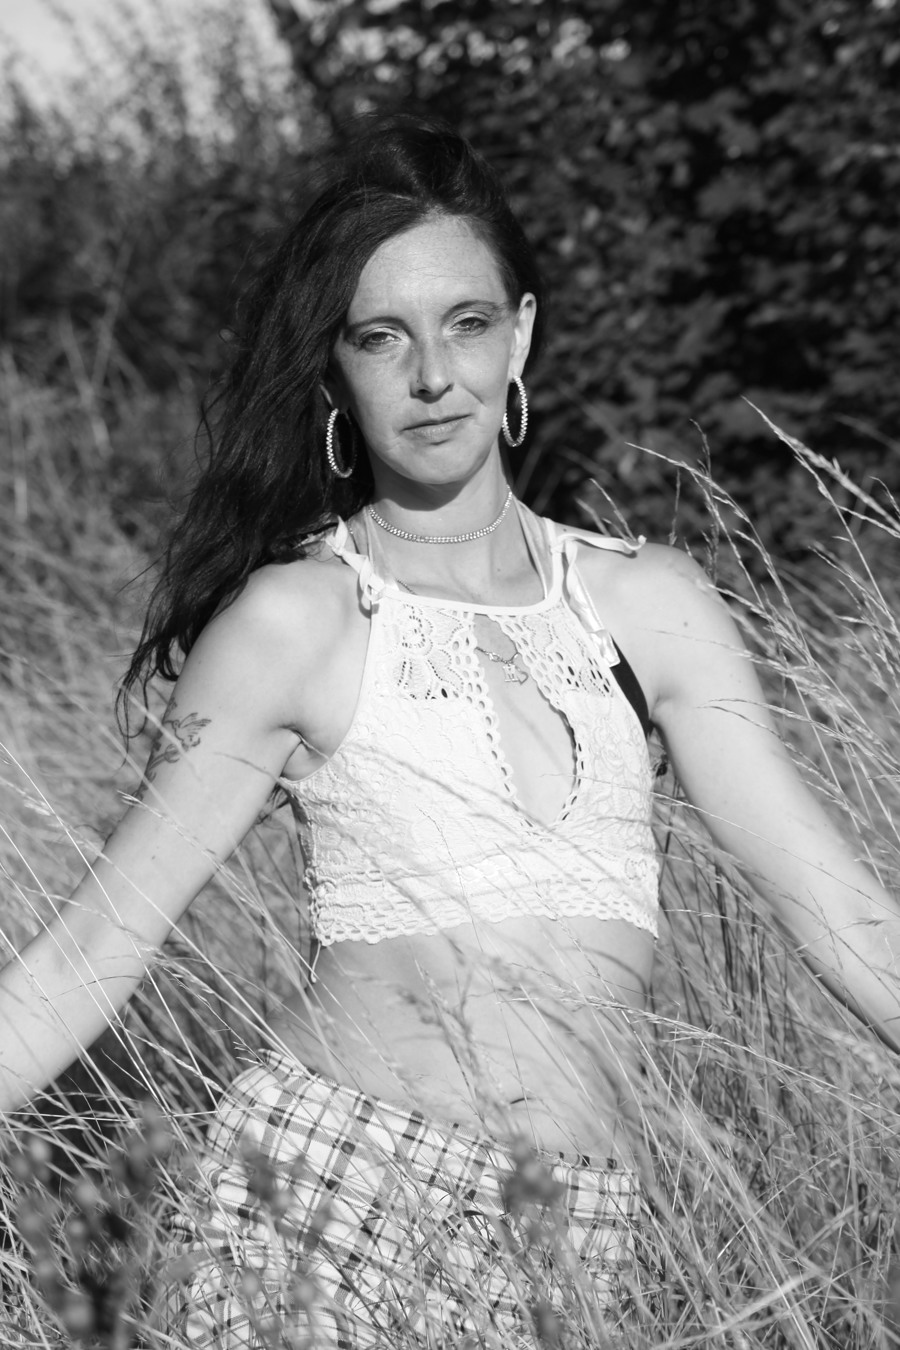 Monochrome In The Long Grass / Photography by Fenland Photographic, Model diamond m / Uploaded 22nd August 2020 @ 11:09 PM